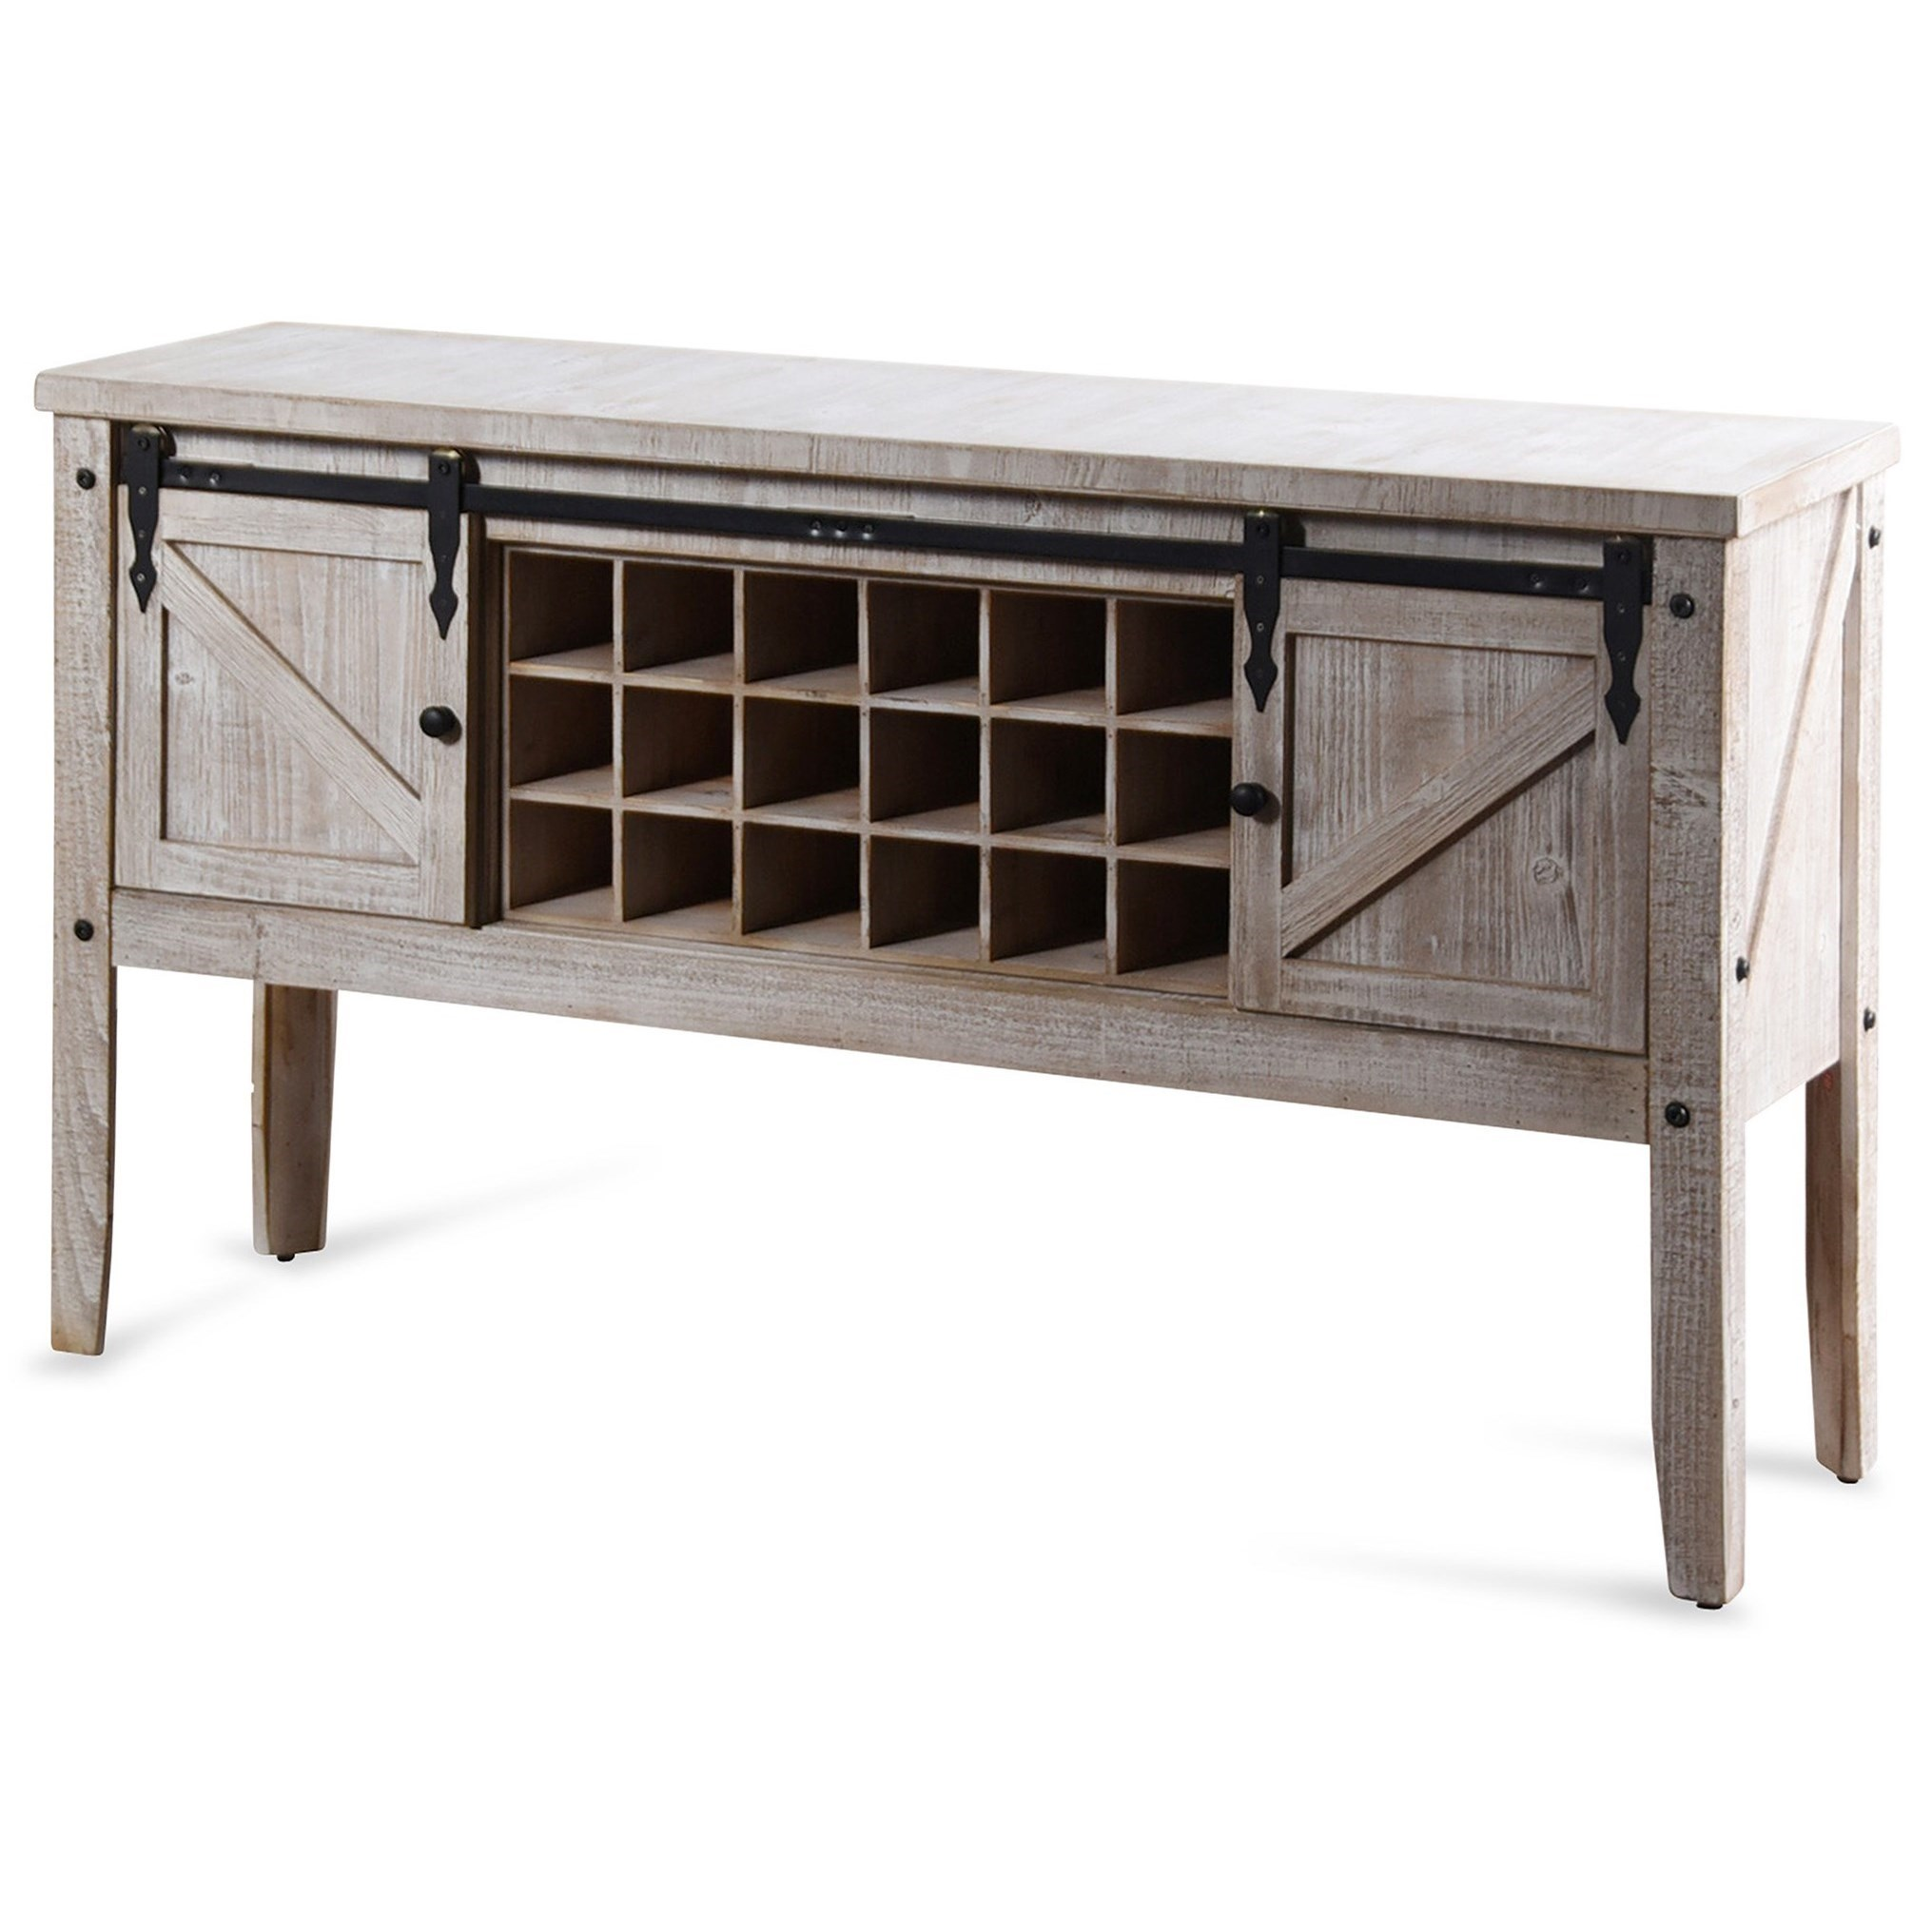 Occasional Cabinets White Farmhouse Wine Storage Console by StyleCraft at Alison Craig Home Furnishings